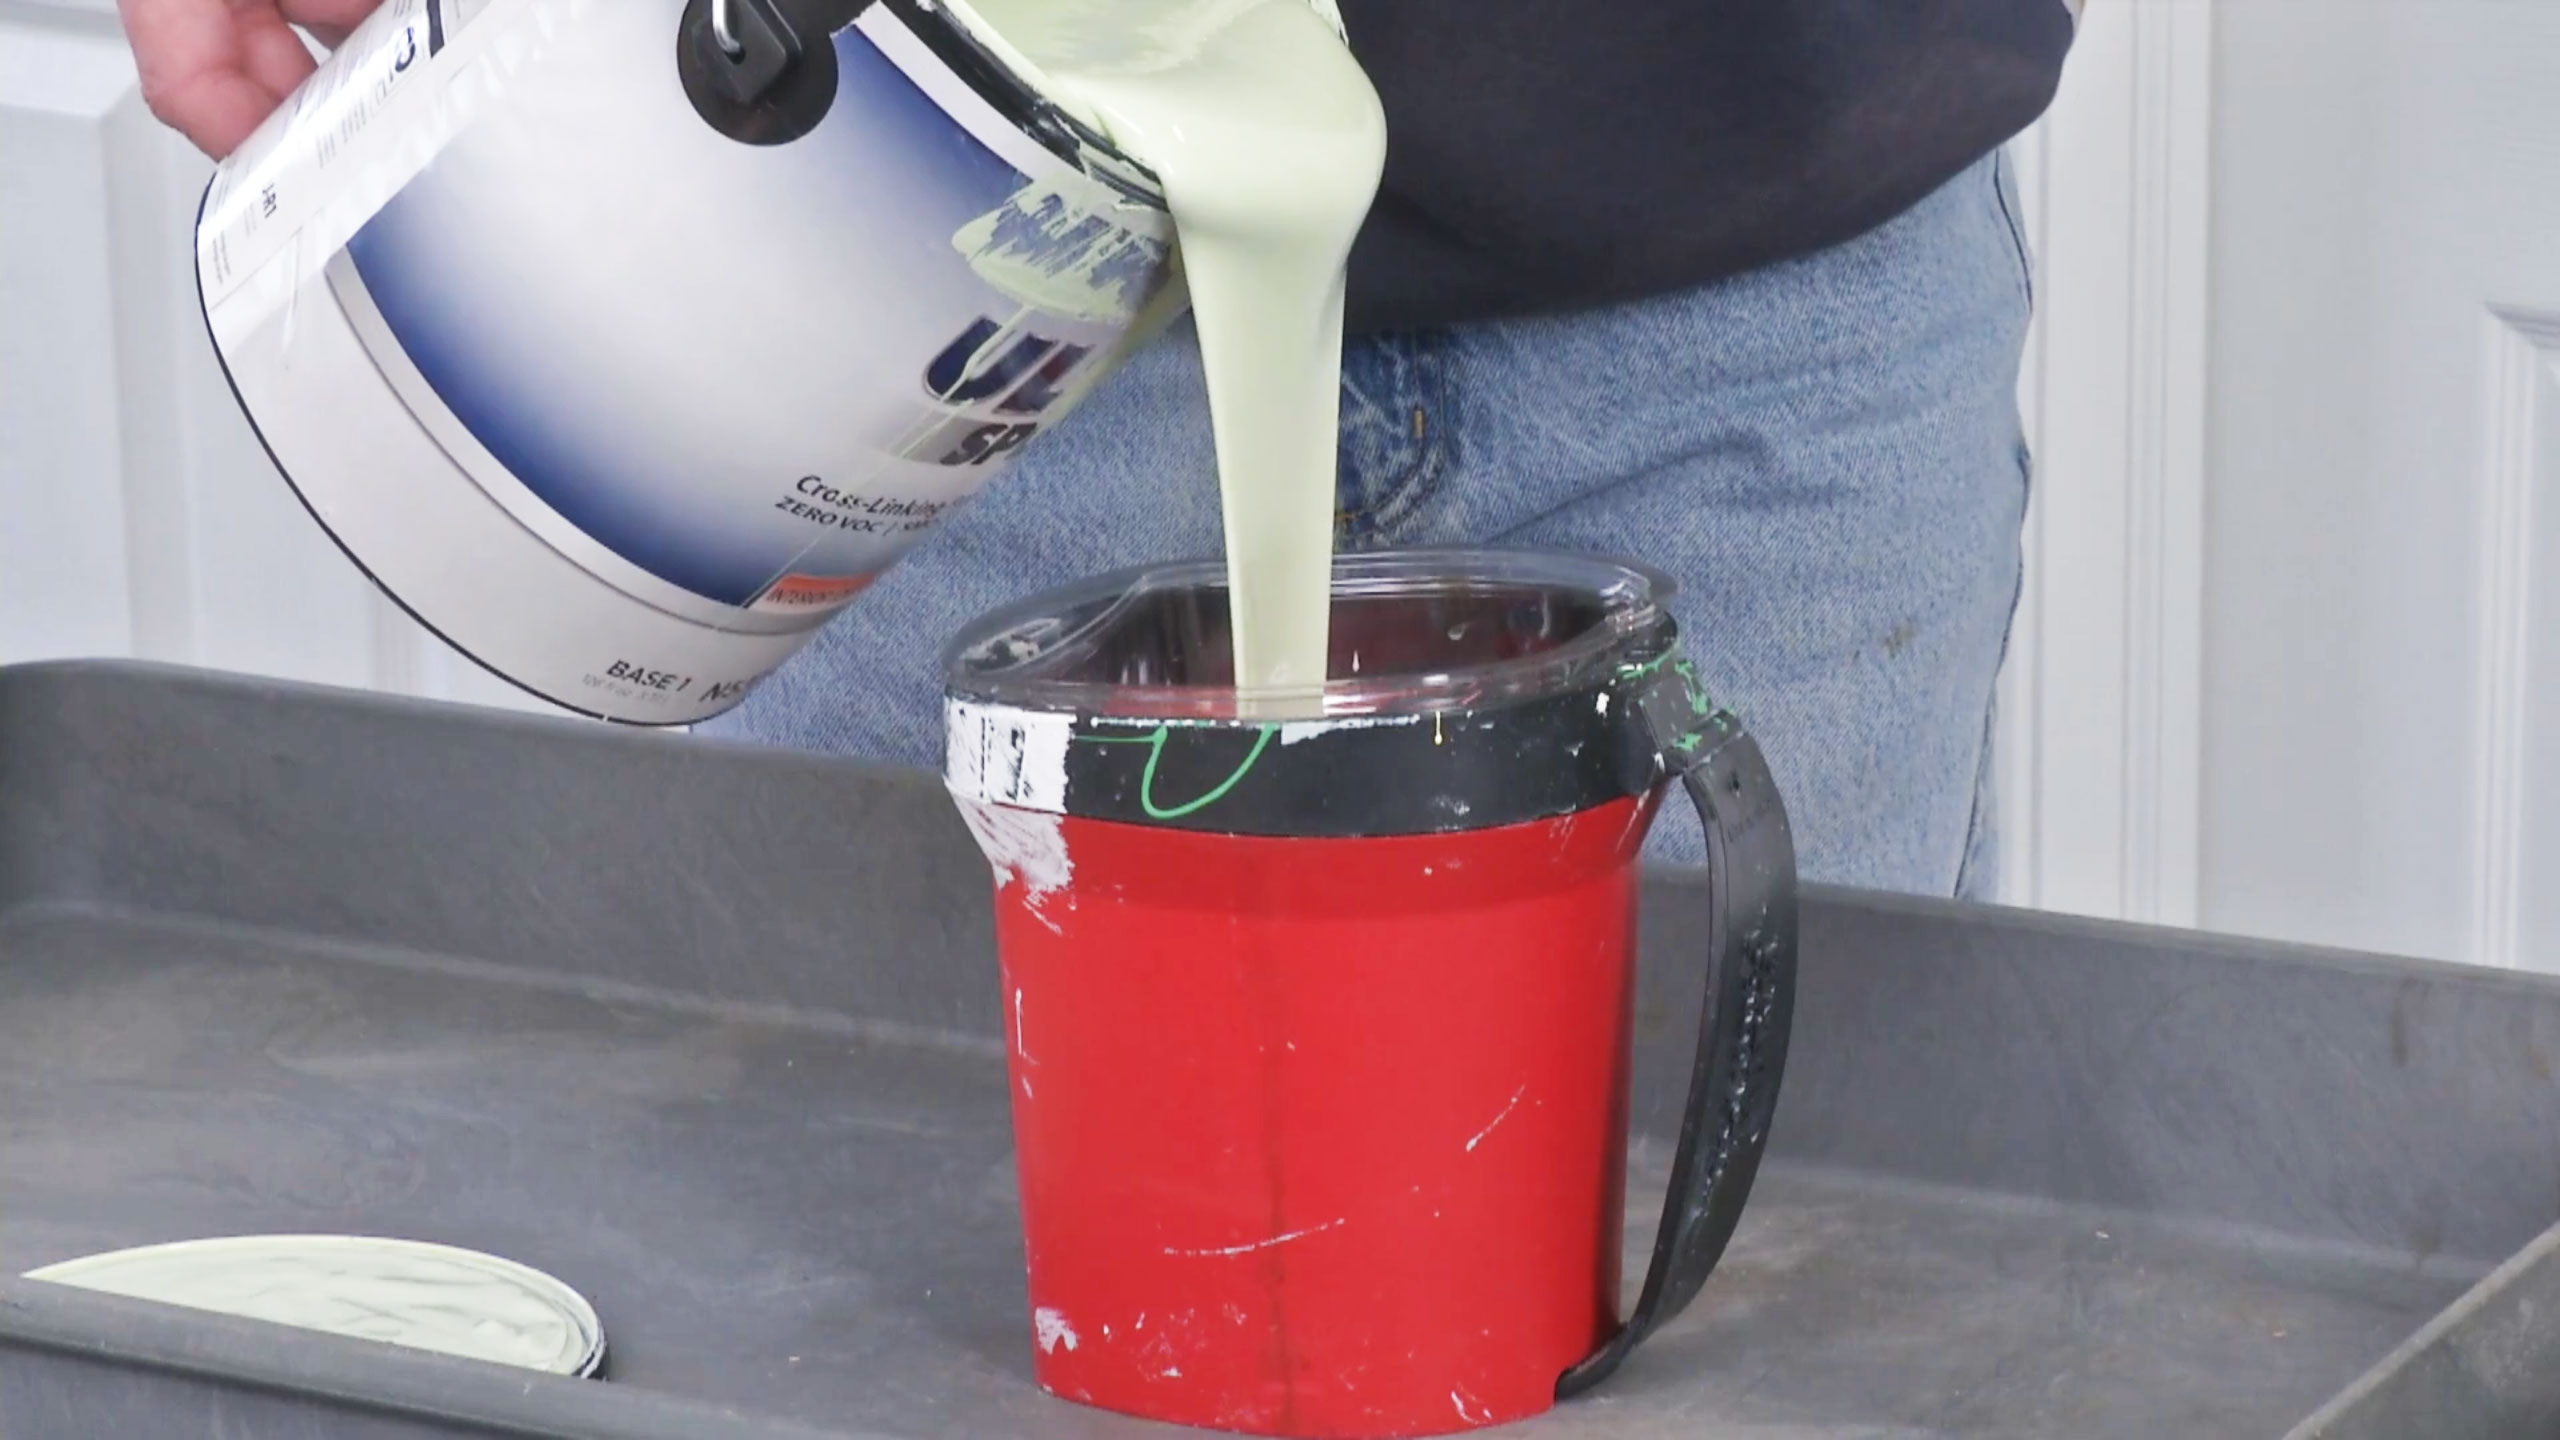 Paint is poured into red paint pail